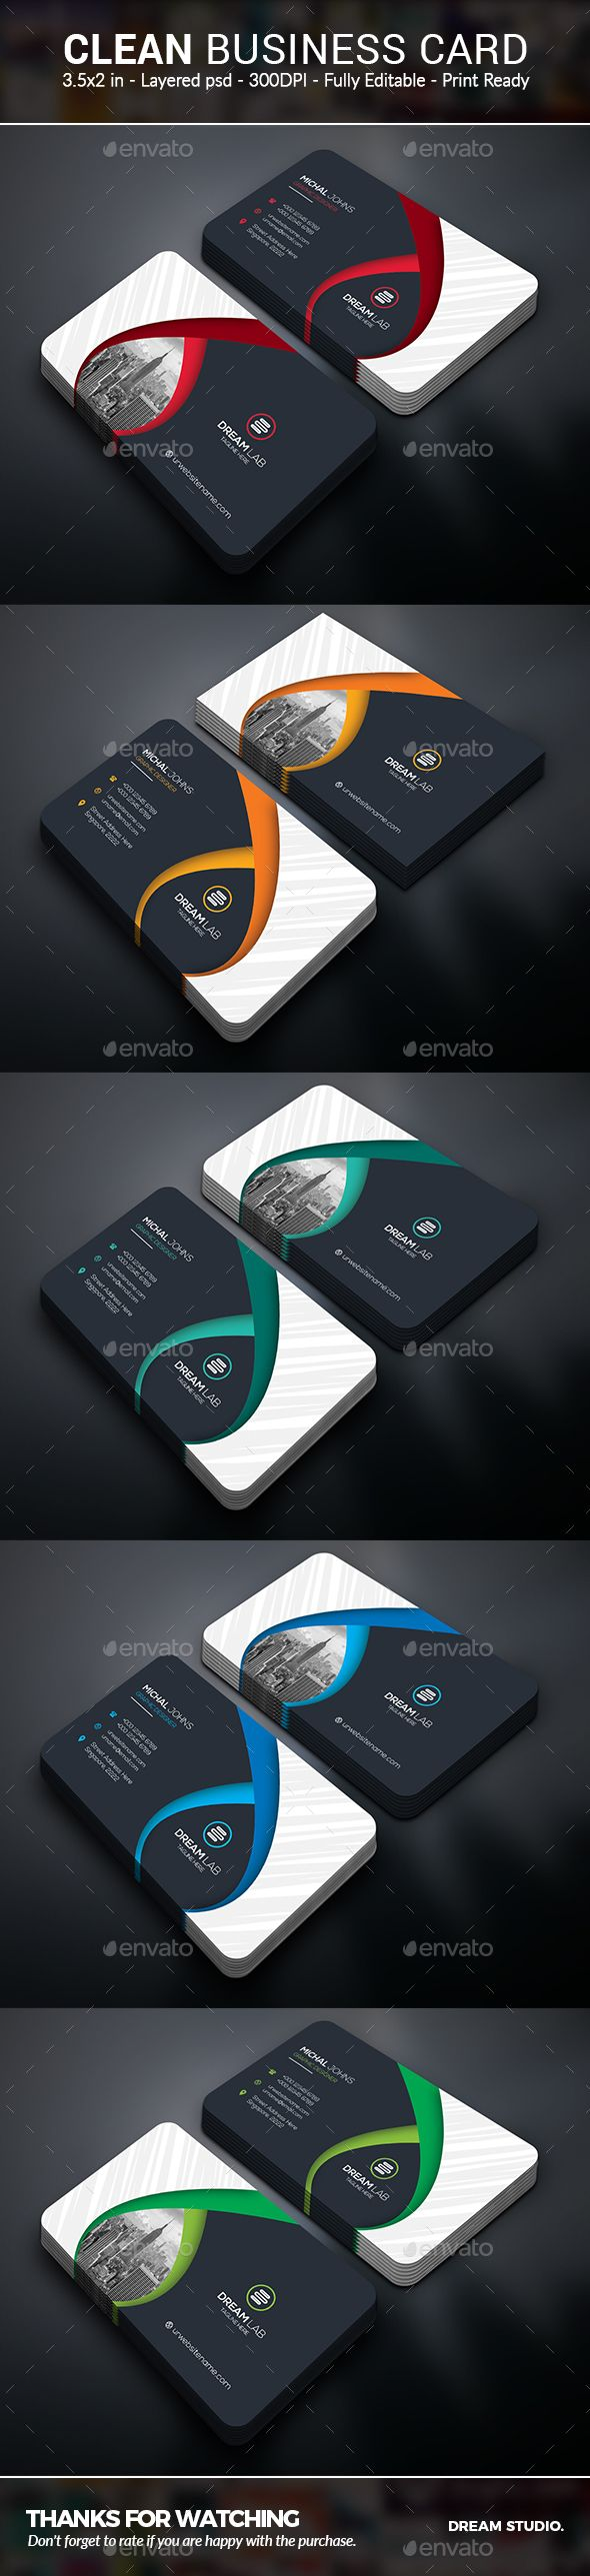 Business Cards   Pinterest   Print templates, Card printing and ...